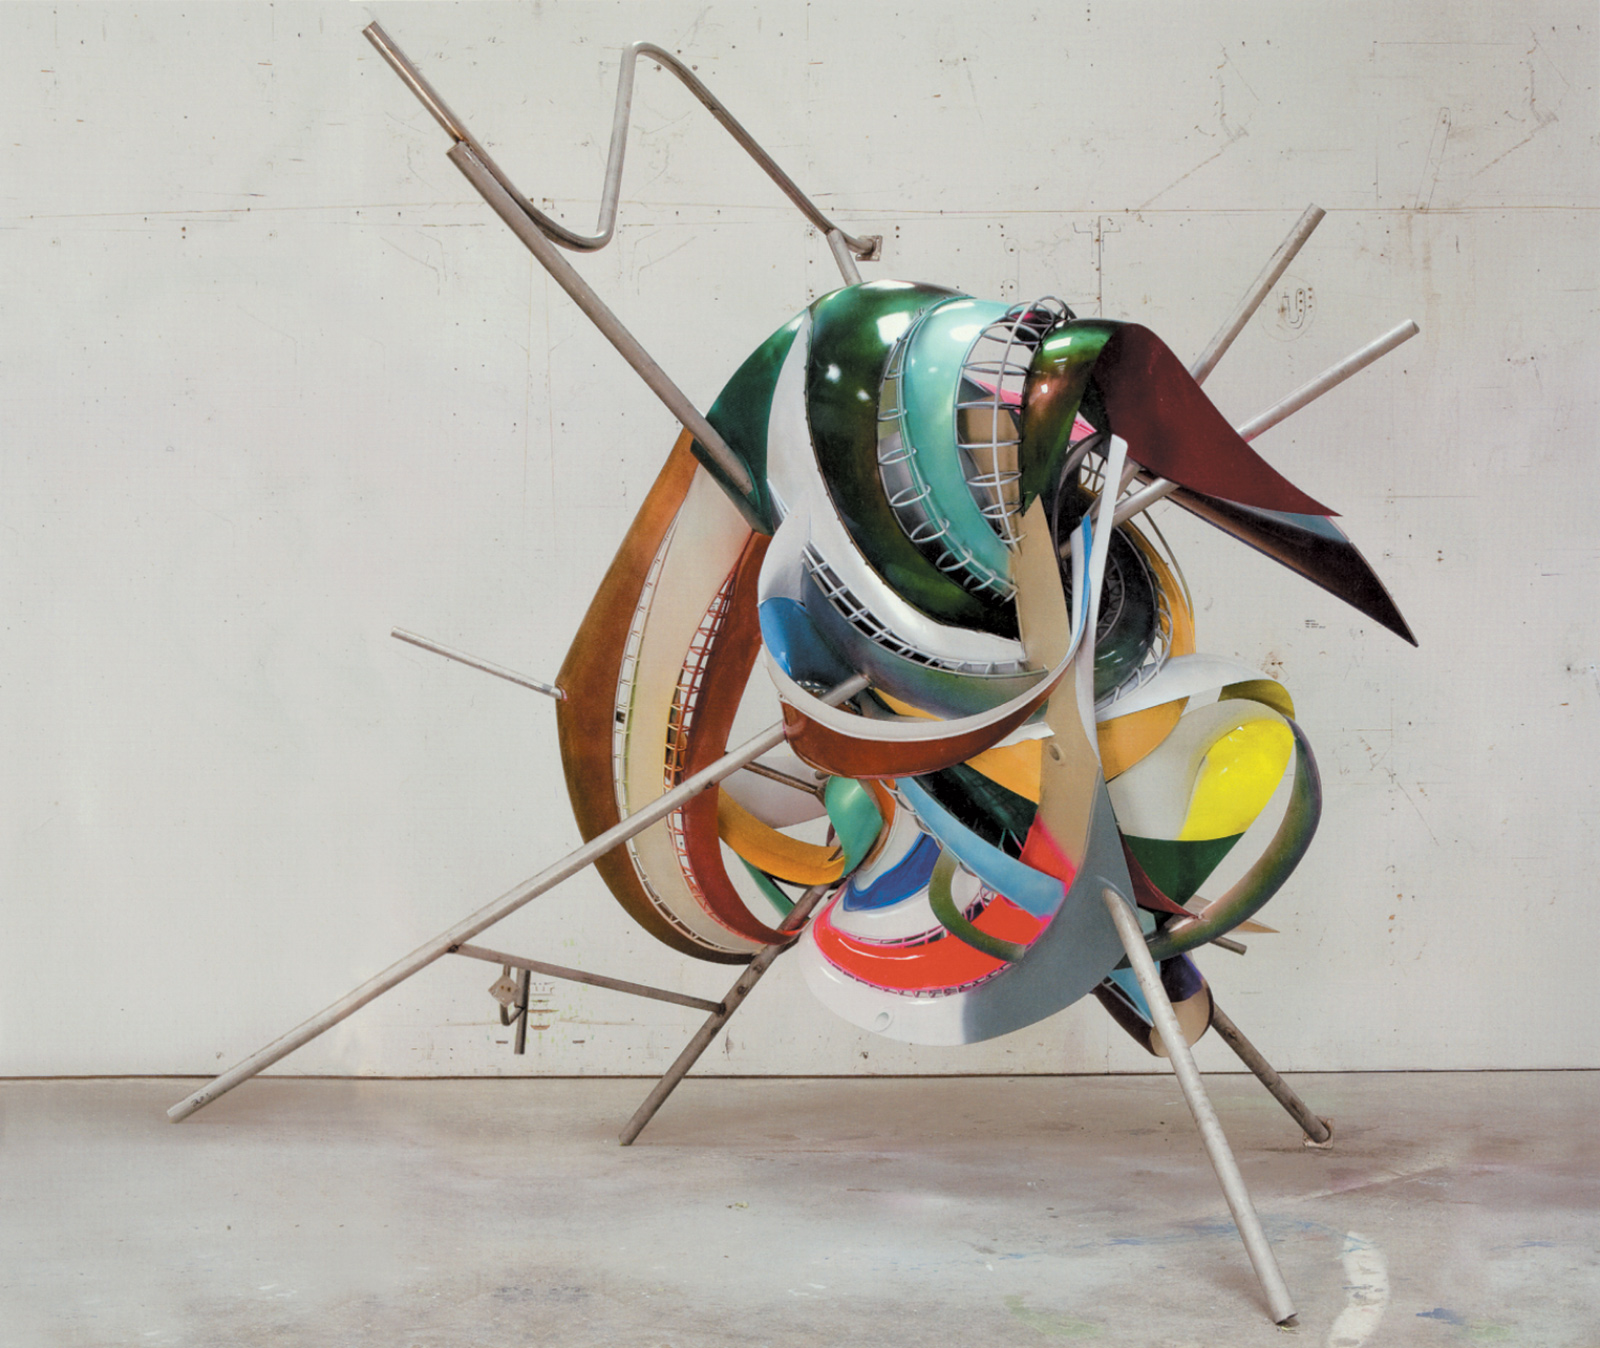 Frank Stella: K.81 combo (K.37 and K.43) large size, Protogen RPT with stainless steel tubing, 180 x 192 x 120 inches, 2009